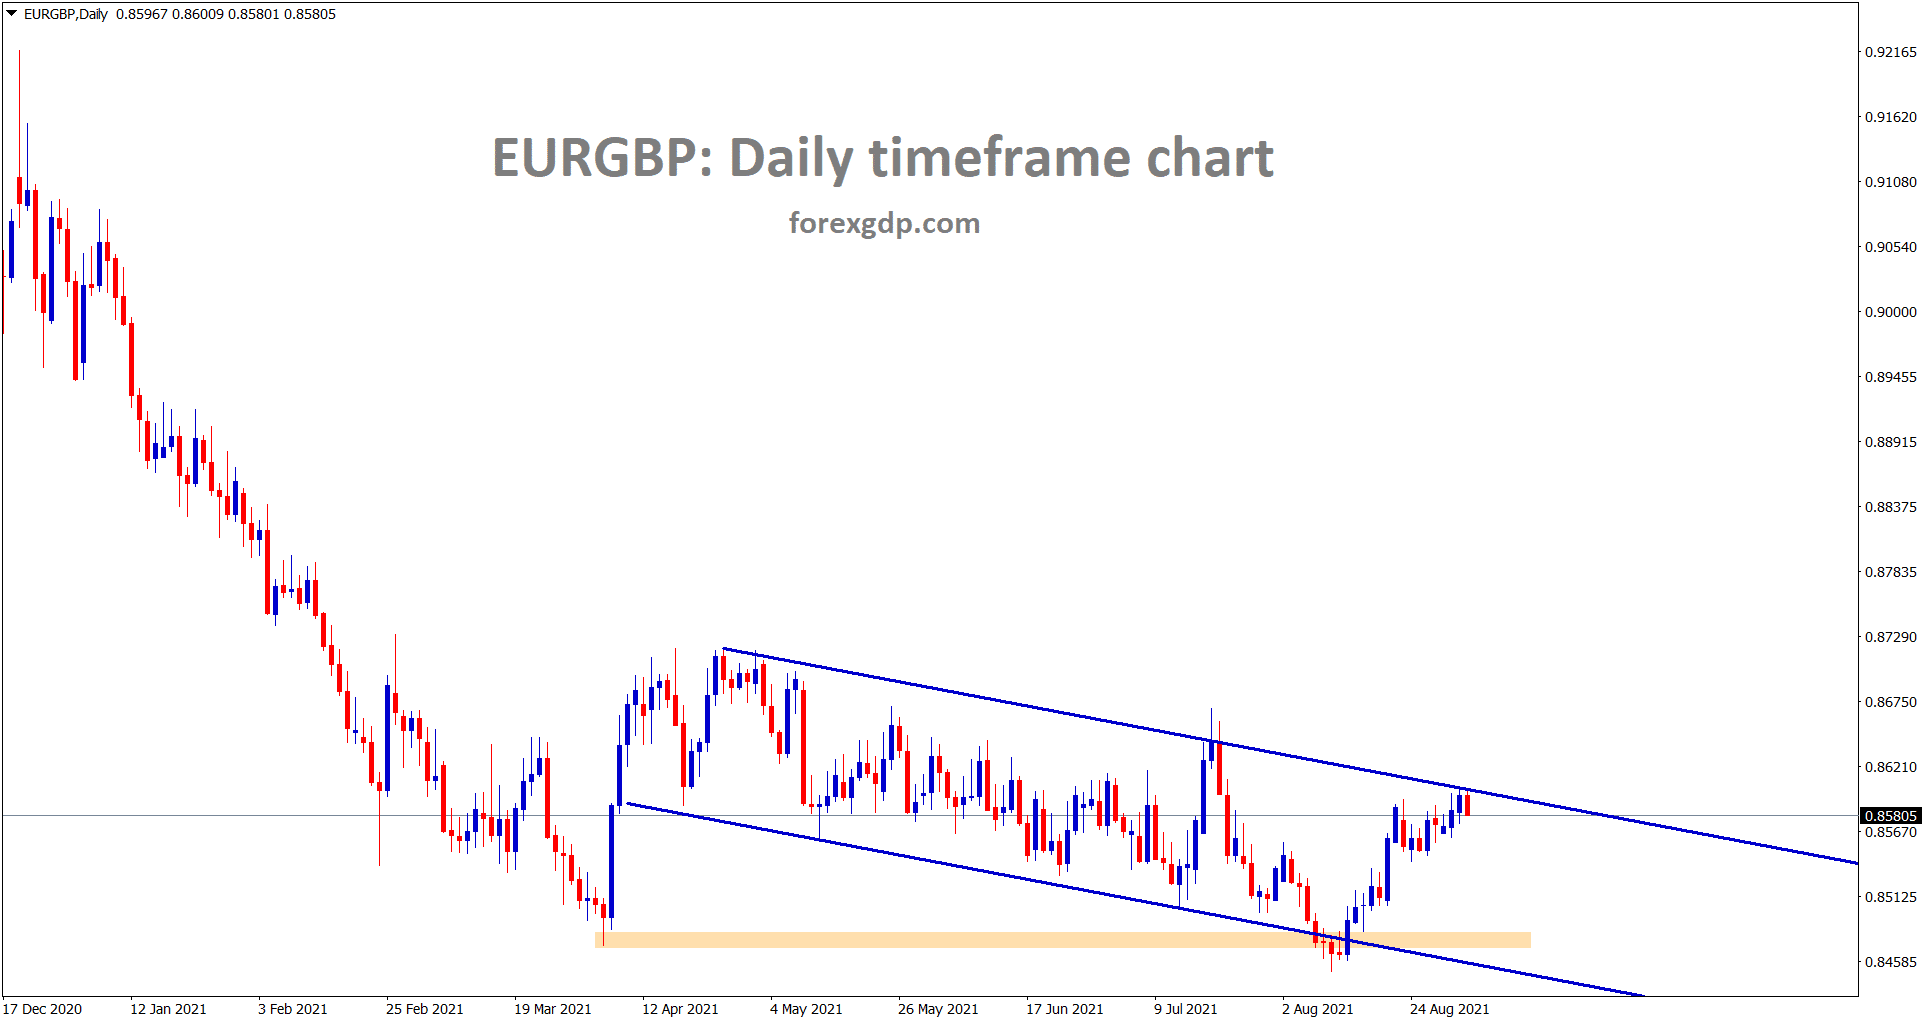 EURGBP reached the lower high of the major descending channel